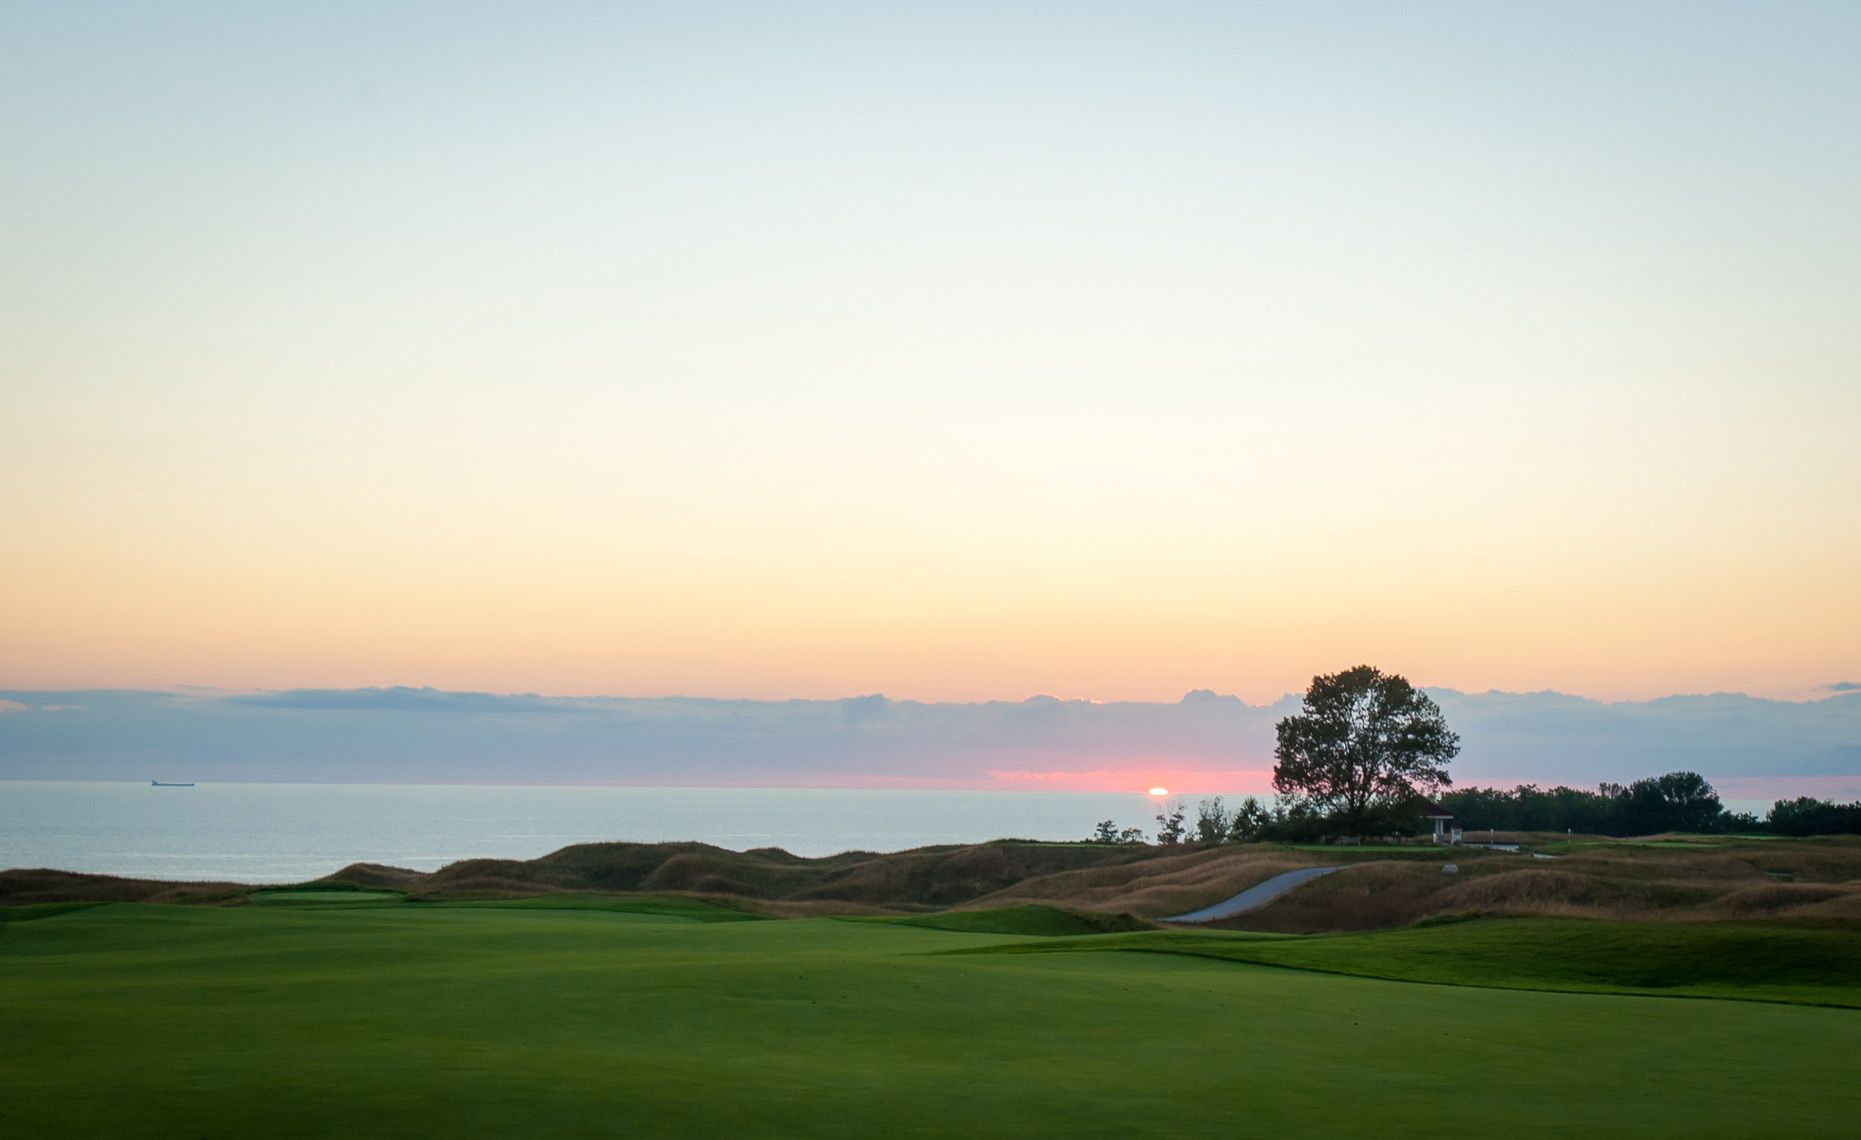 Neil-Colton-travel-photography-arcadia-bluffs-golf-club-172